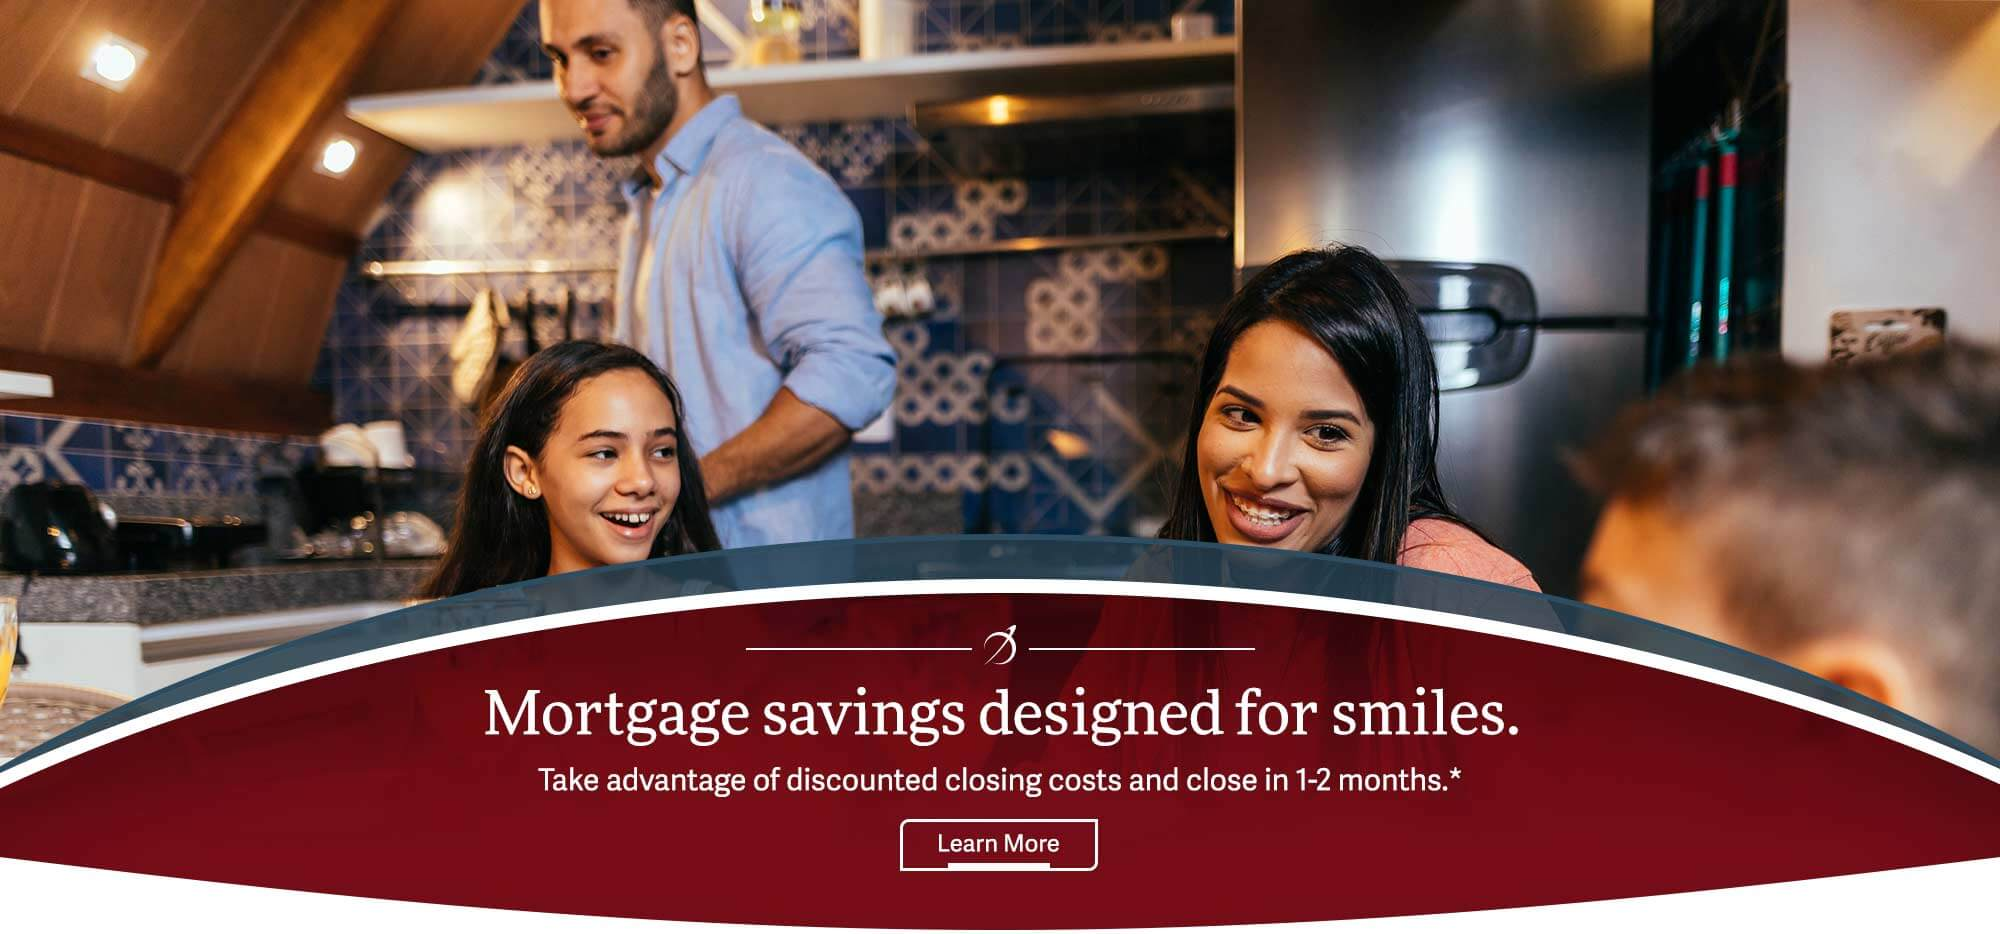 Mortgage Designed for Smiles